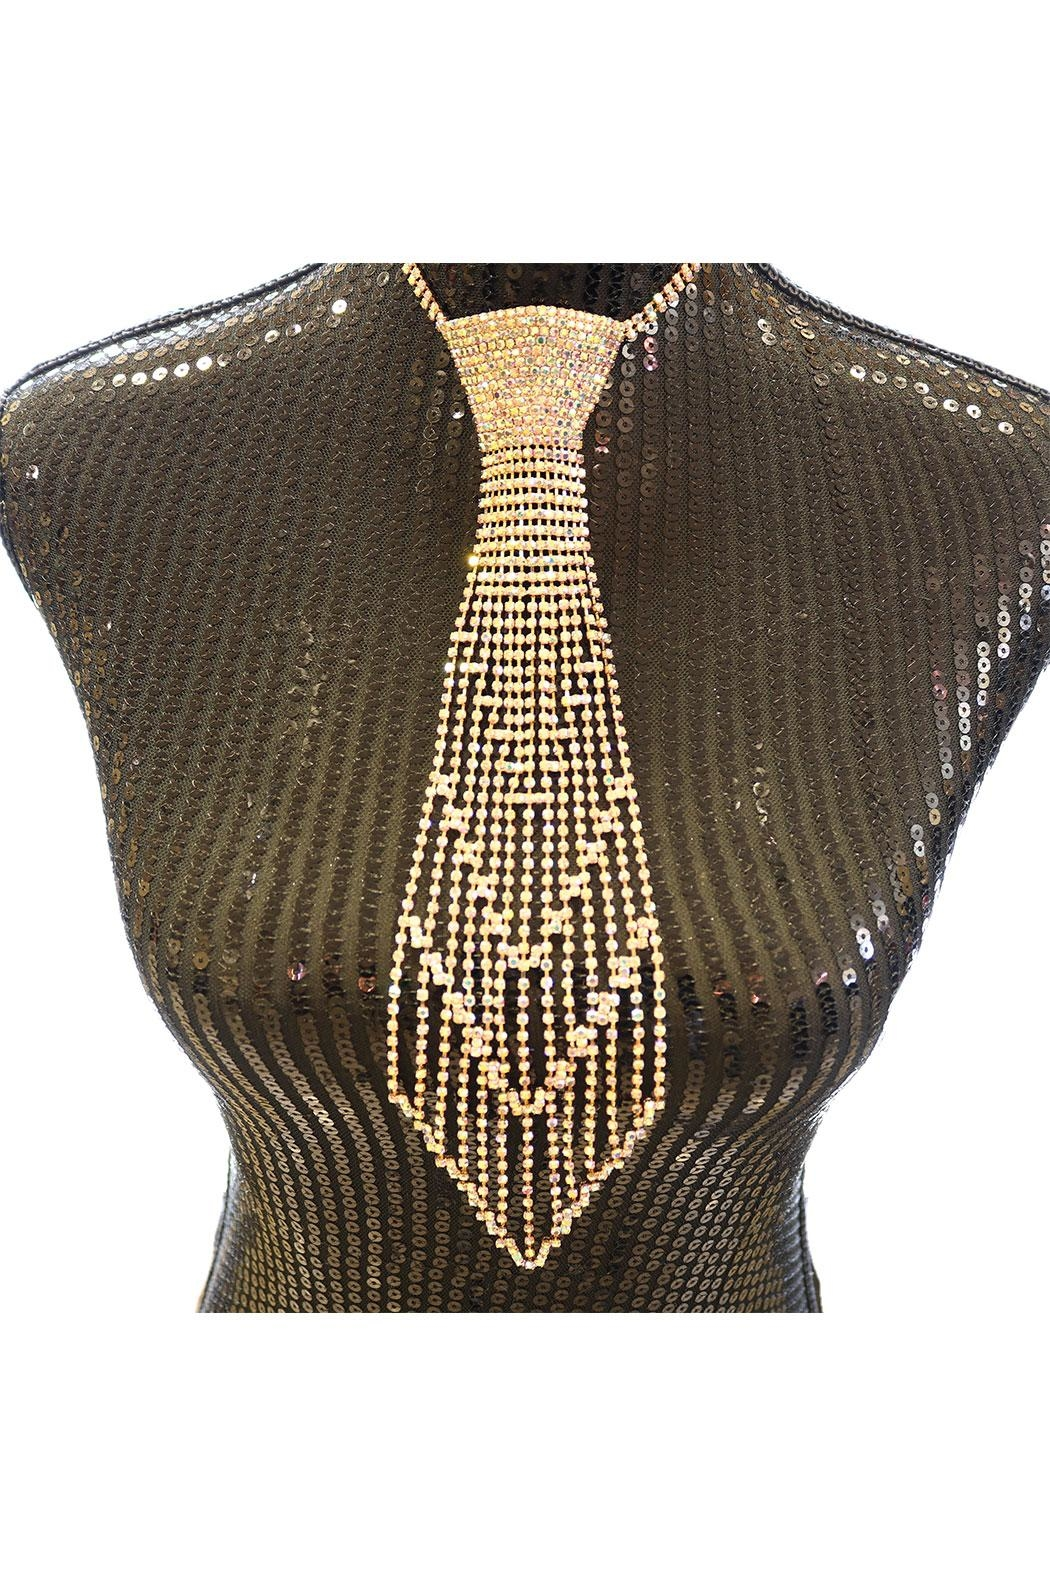 Nadya's Closet Rhinestone Tie Necklace - Front Cropped Image